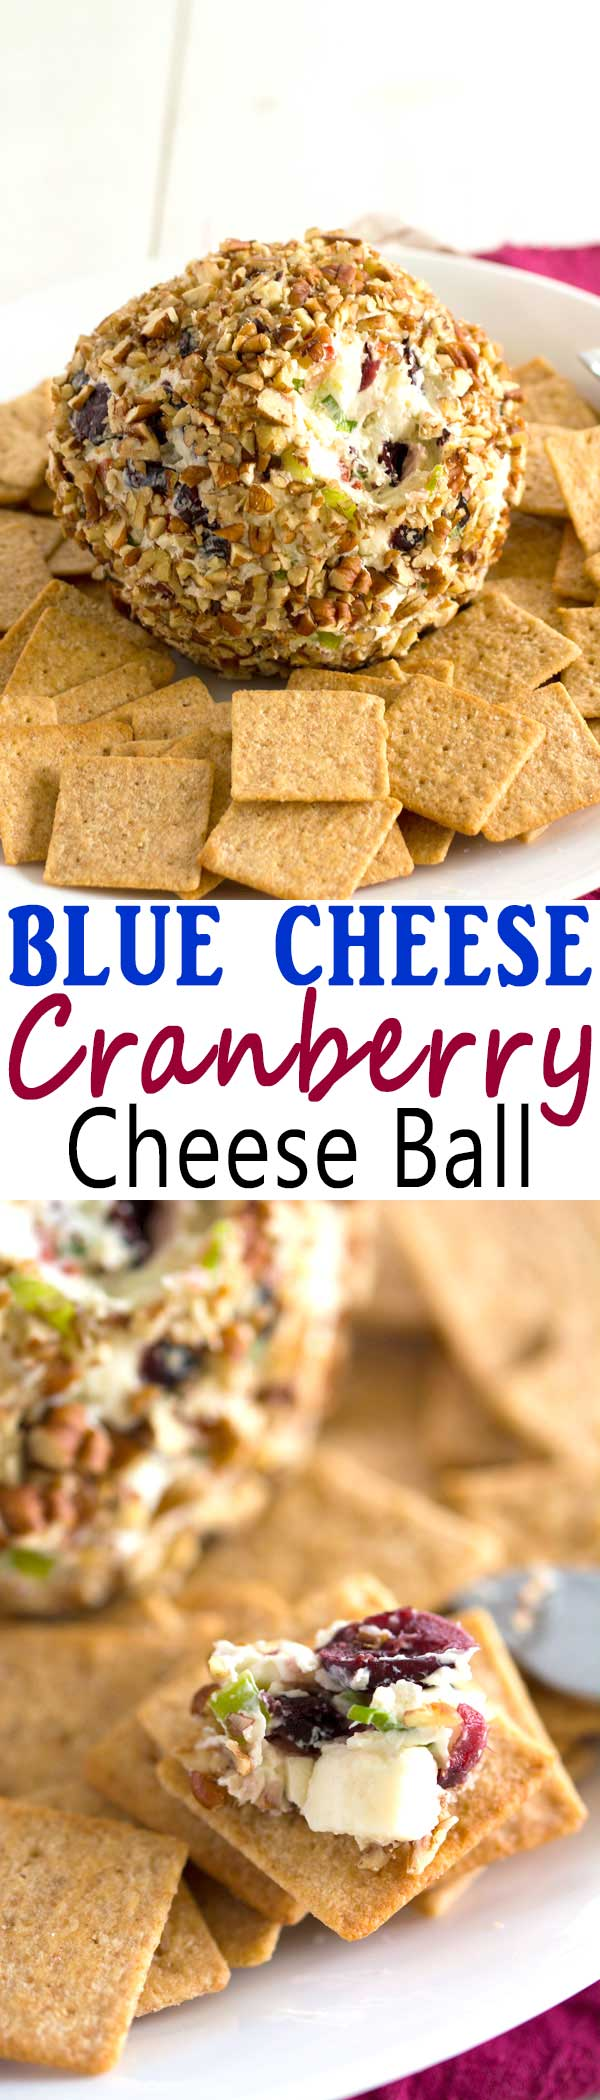 Blue Cheese Cranberry Cheese Ball recipe for parties or the Super Bowl! Bursting with flavors and textures like crunchy pecans, celery, sweet peppers and green onions! #appetizer